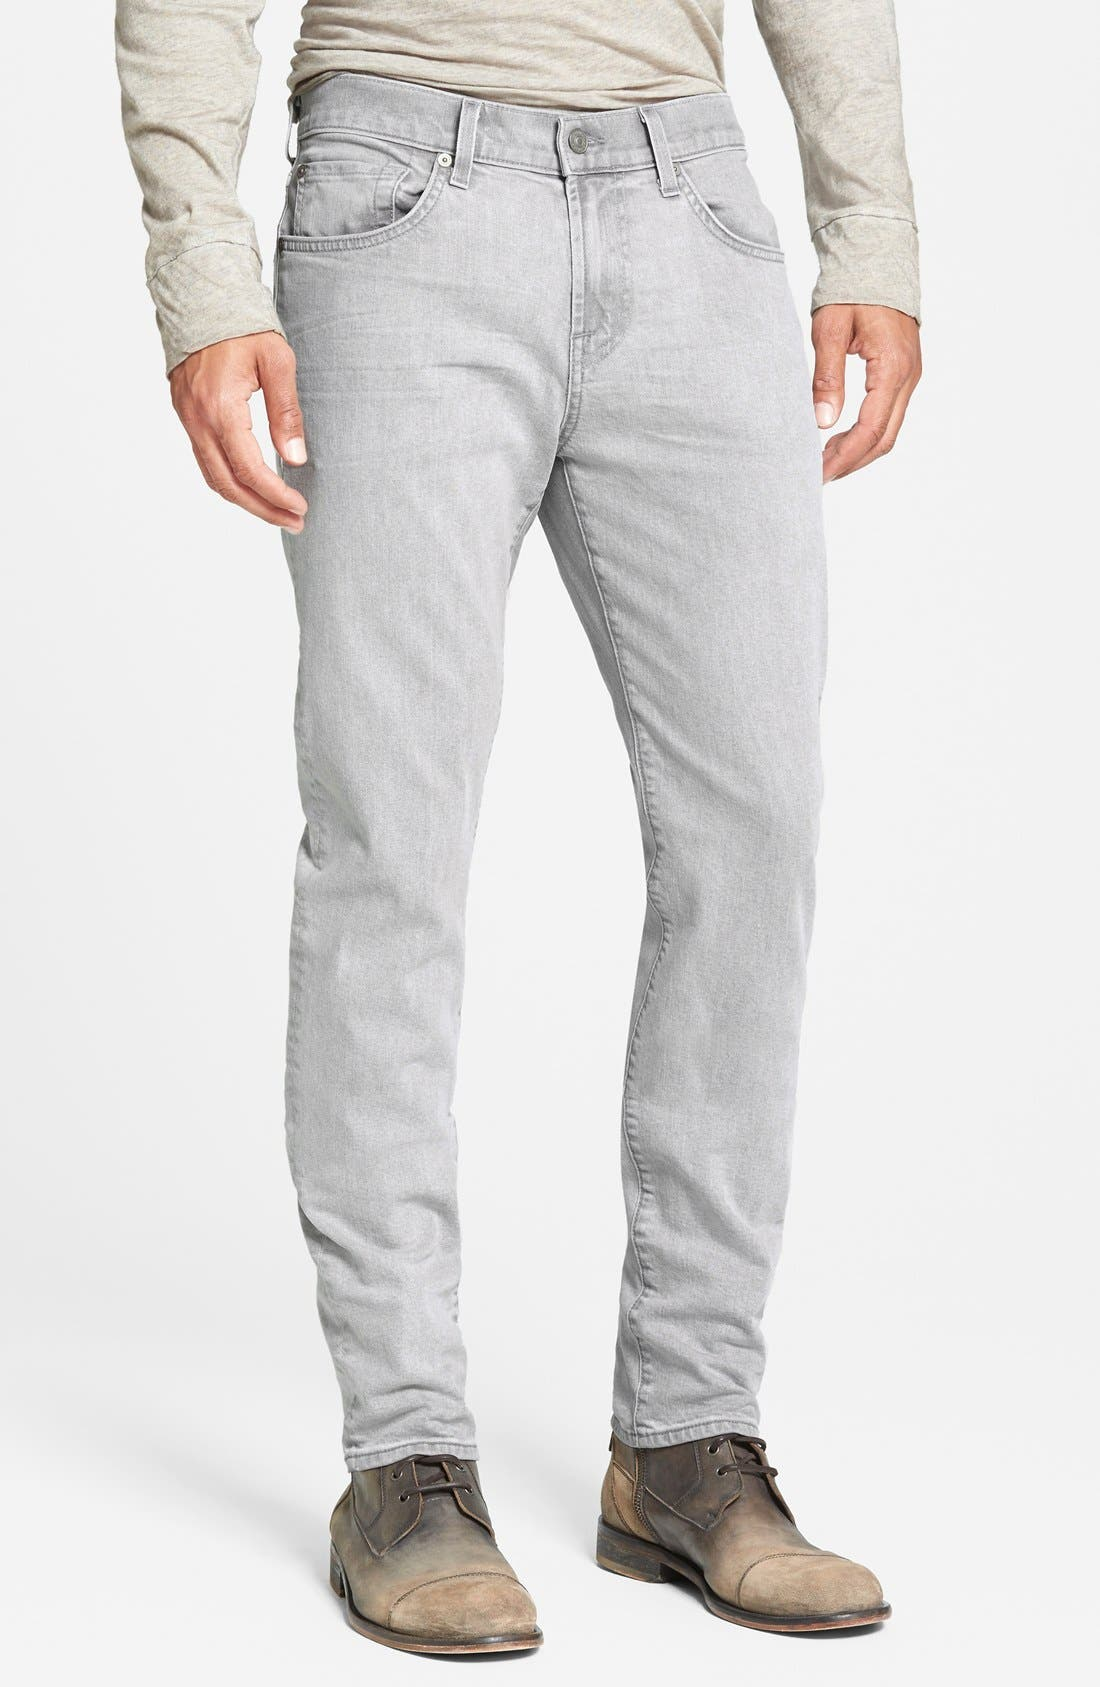 Alternate Image 1 Selected - 7 For All Mankind® 'Paxtyn' Slim Straight Leg Jeans (Clean Grey)